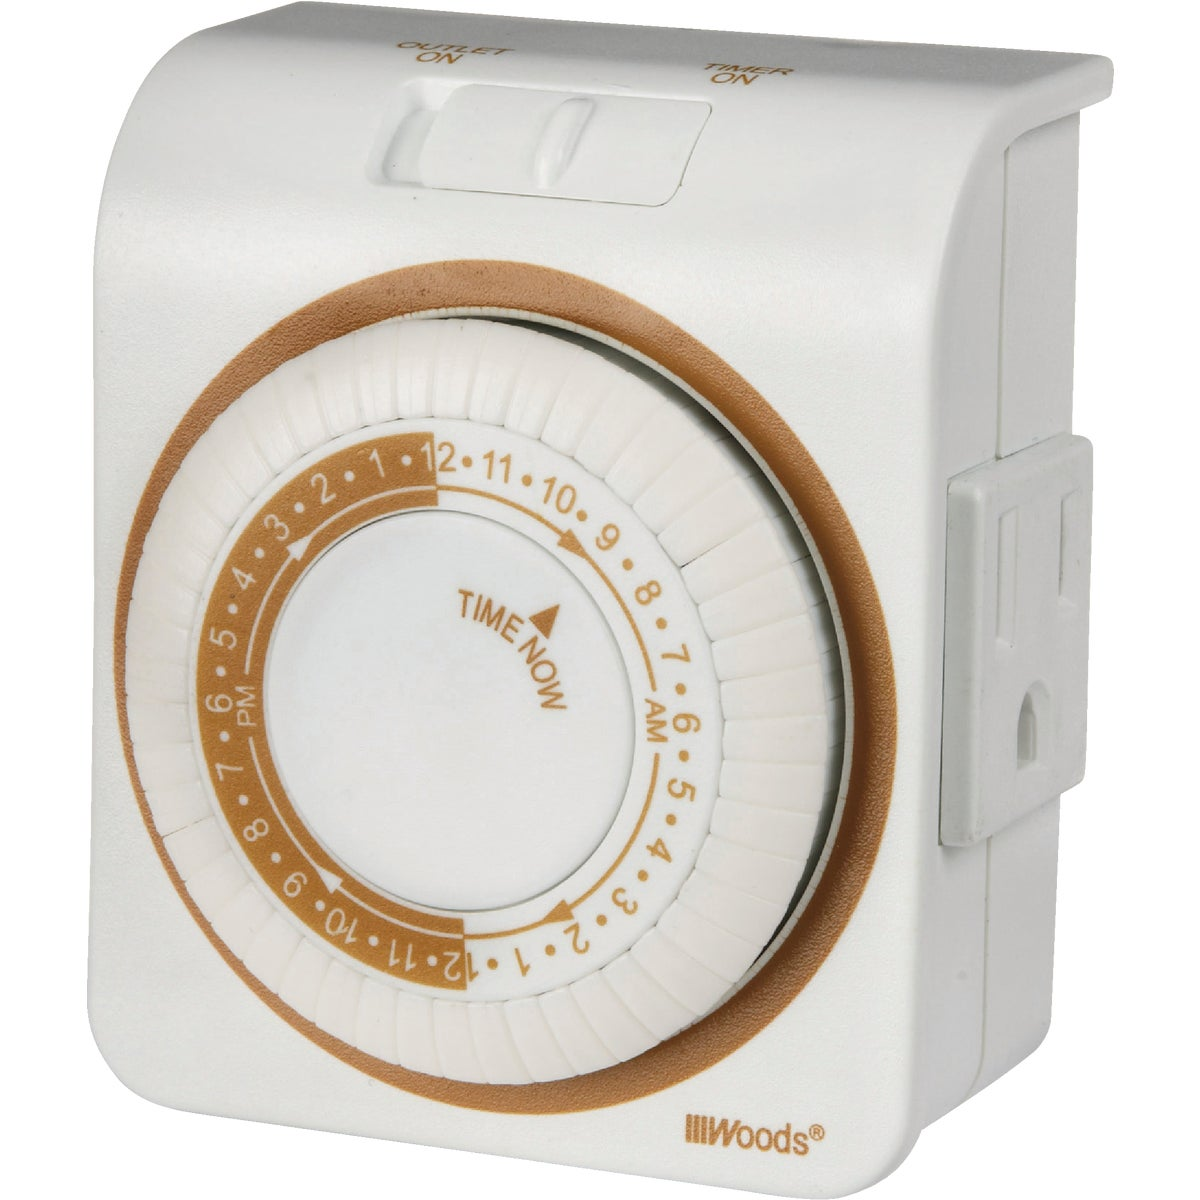 24-HR INDOOR TIMER - 50001 by Woods Wire Coleman